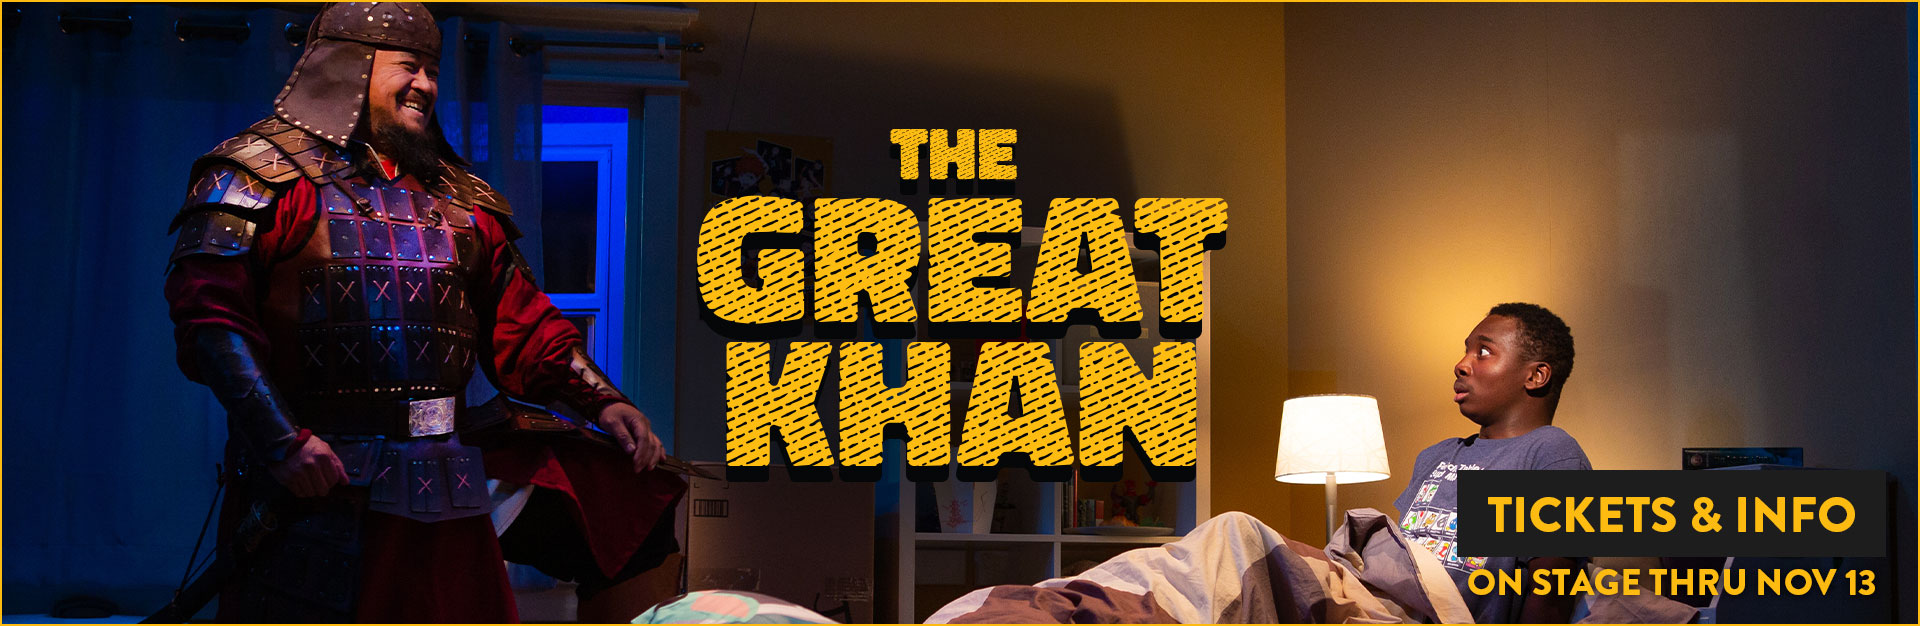 The Great Khan